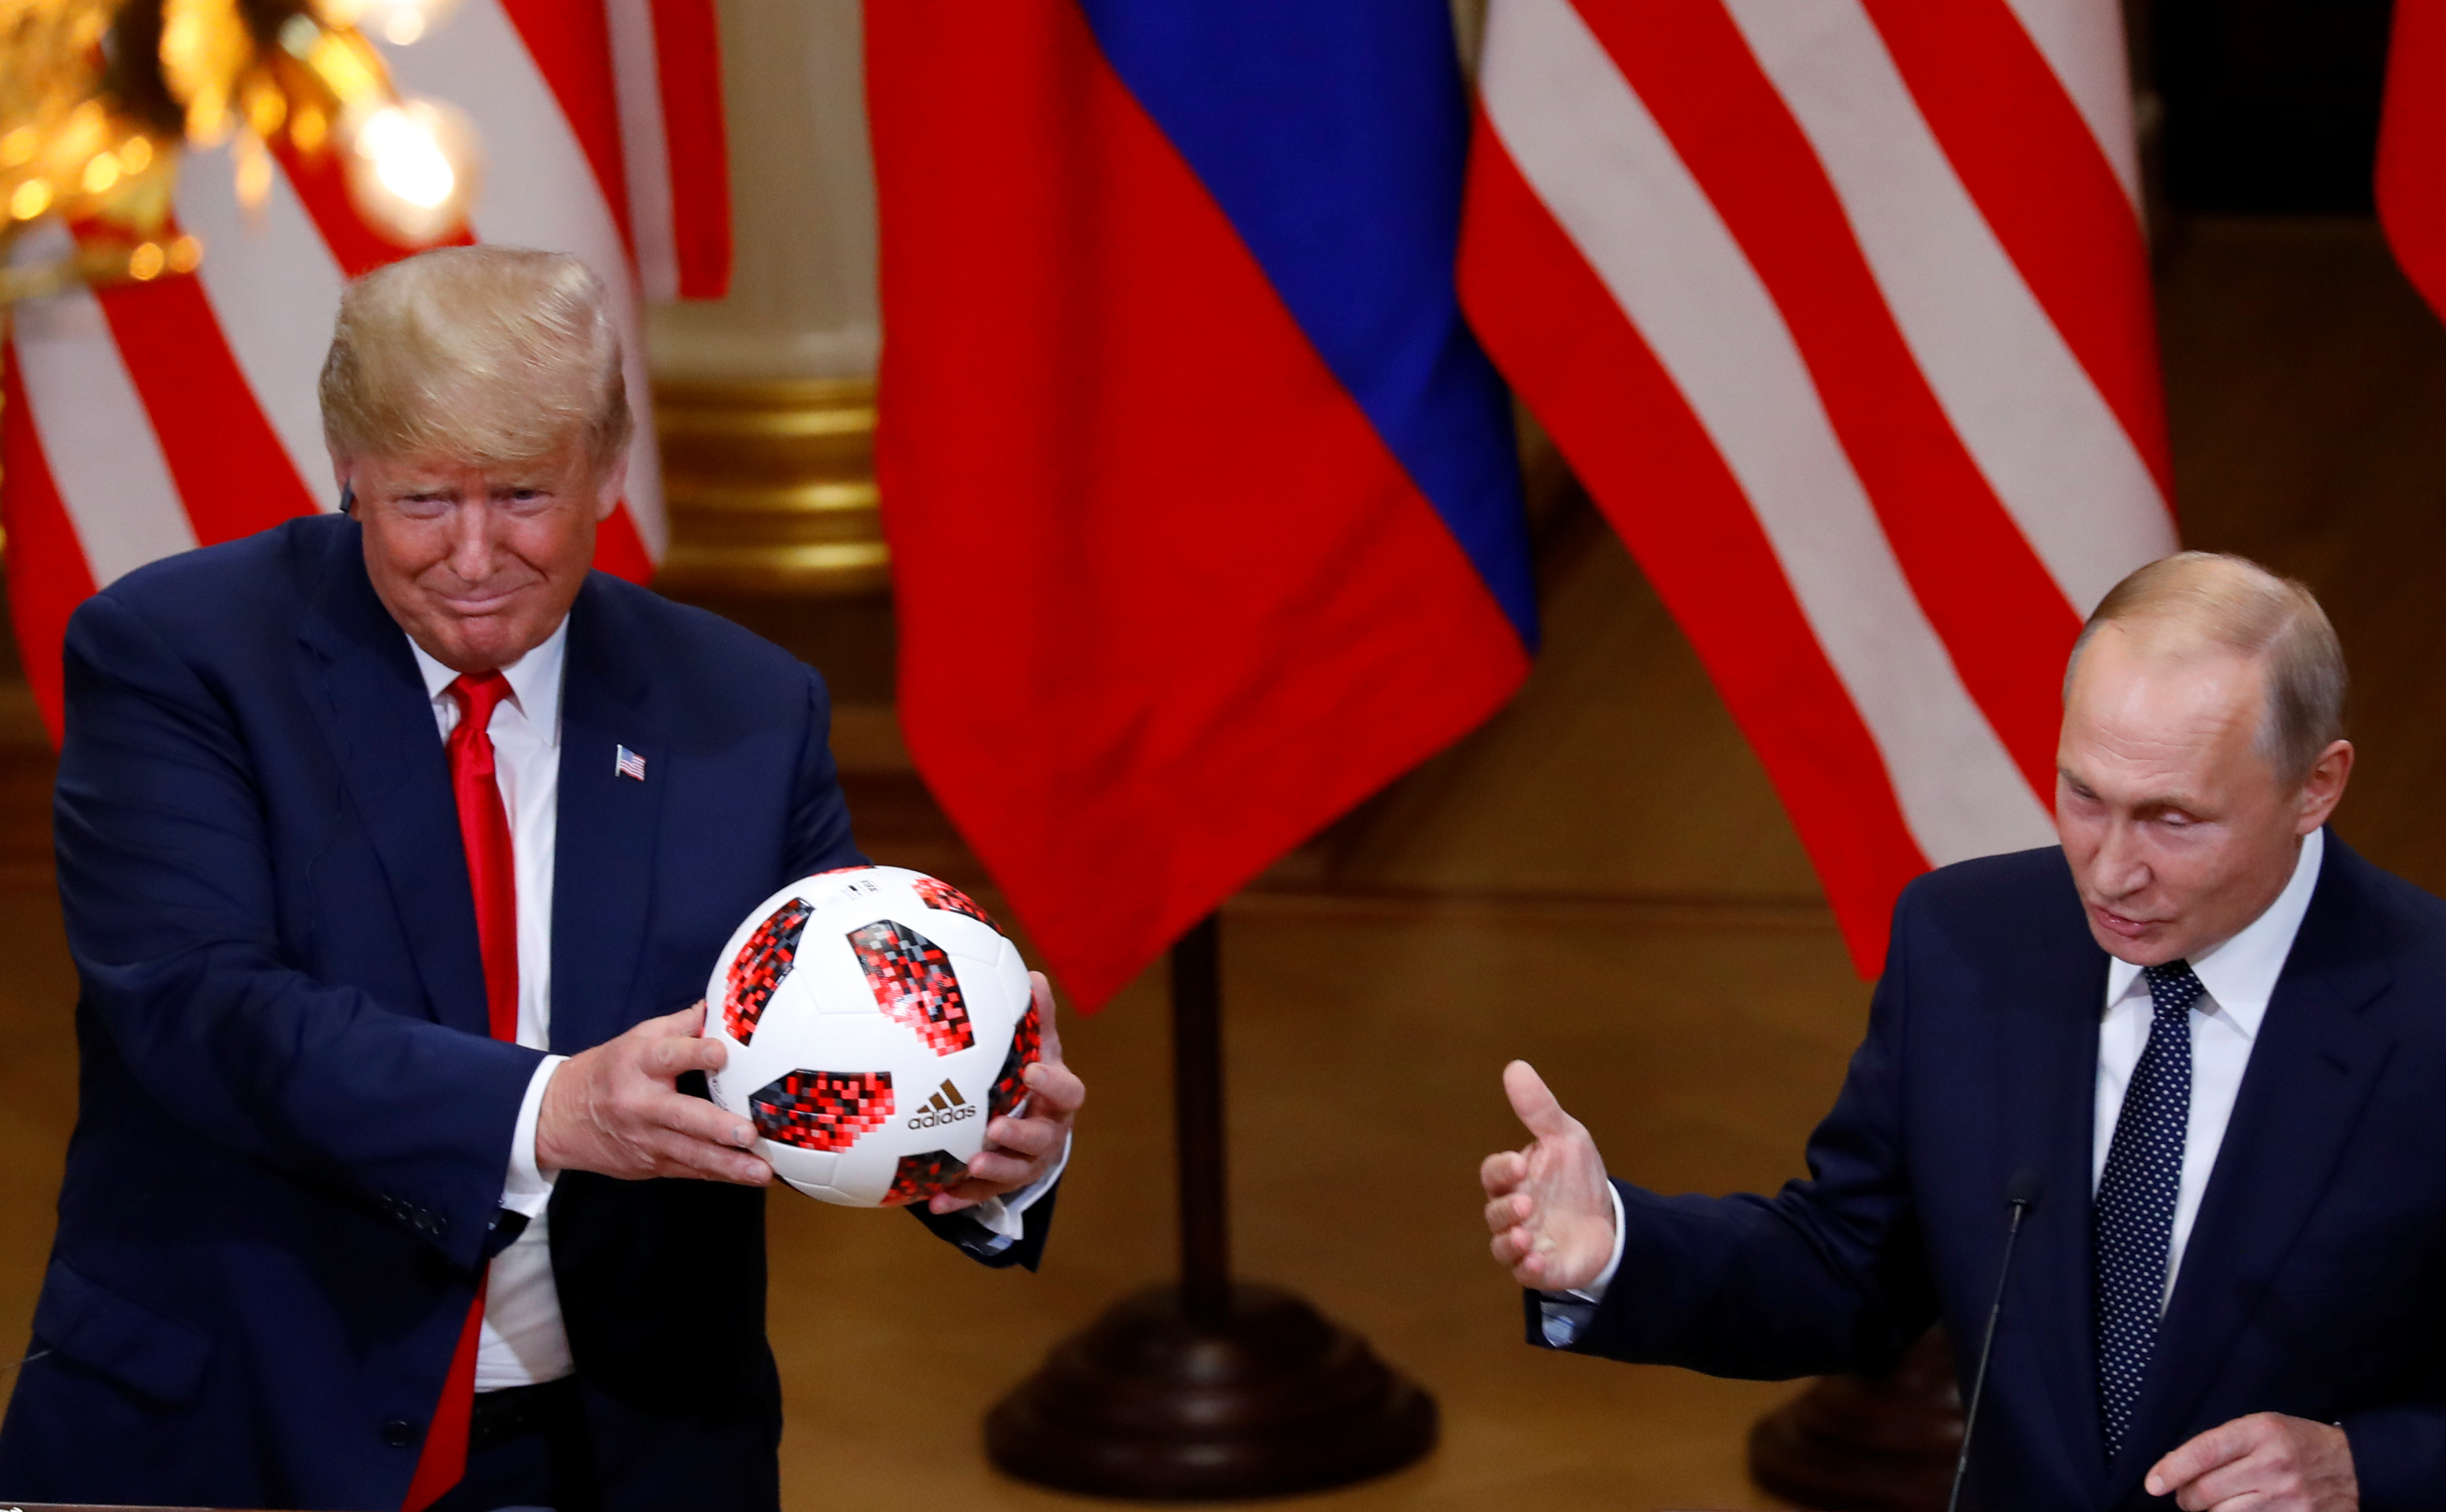 U.S. President Donald Trump receives a football from Russian President Vladimir Putin as they hold a joint news conference after their meeting in Helsinki, Finland, July 16, 2018. REUTERS/Leonhard Foeger - RC1EE9519B10